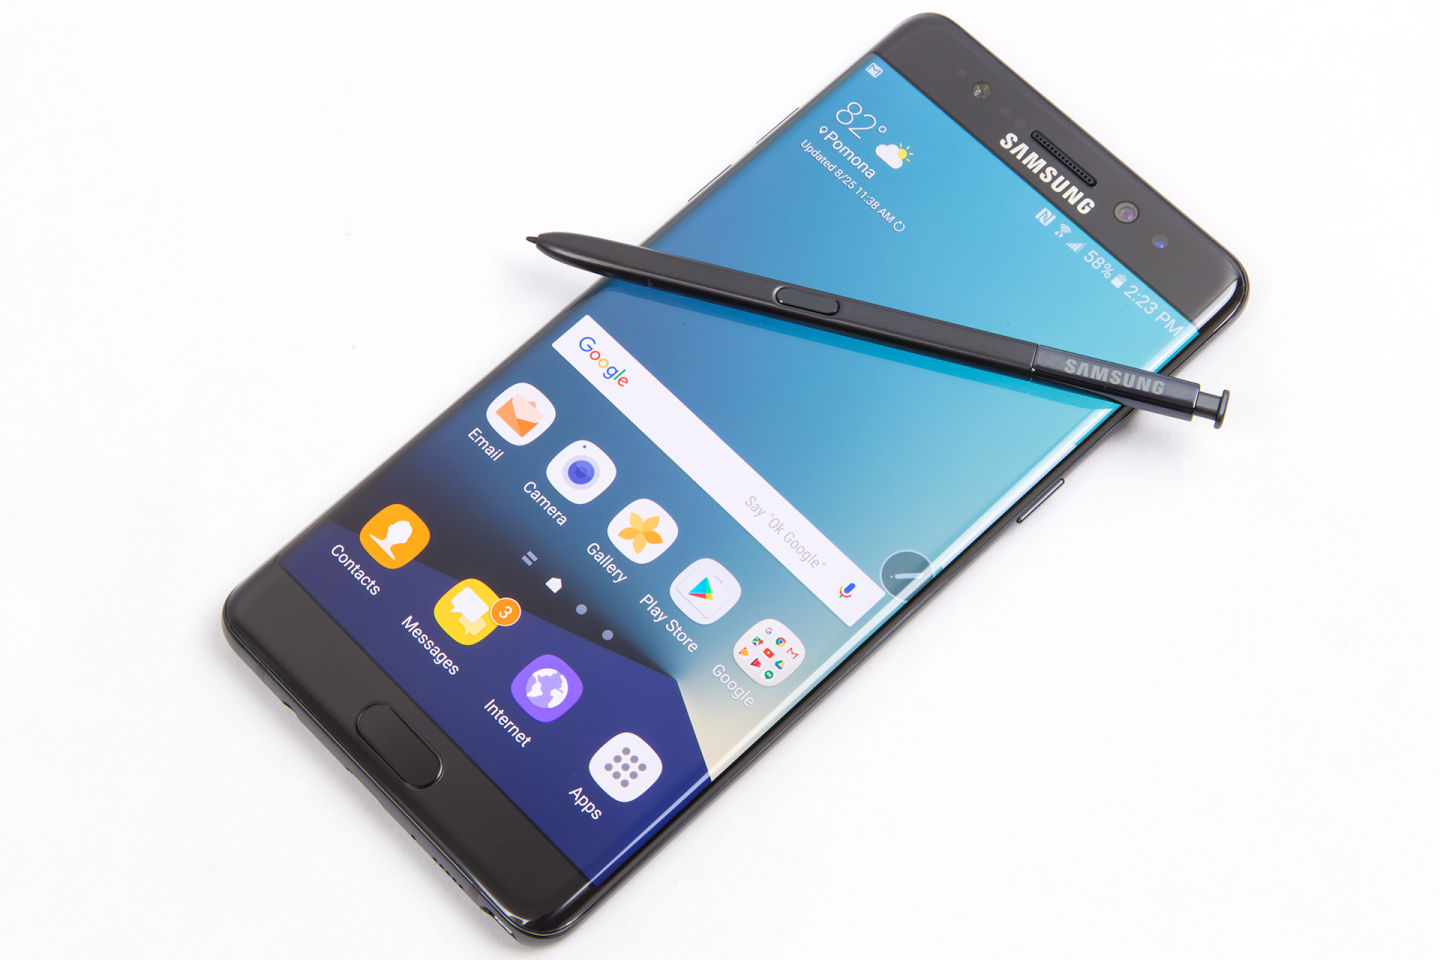 Galaxy Note7 is now banned outright from a lot of commercial airlines